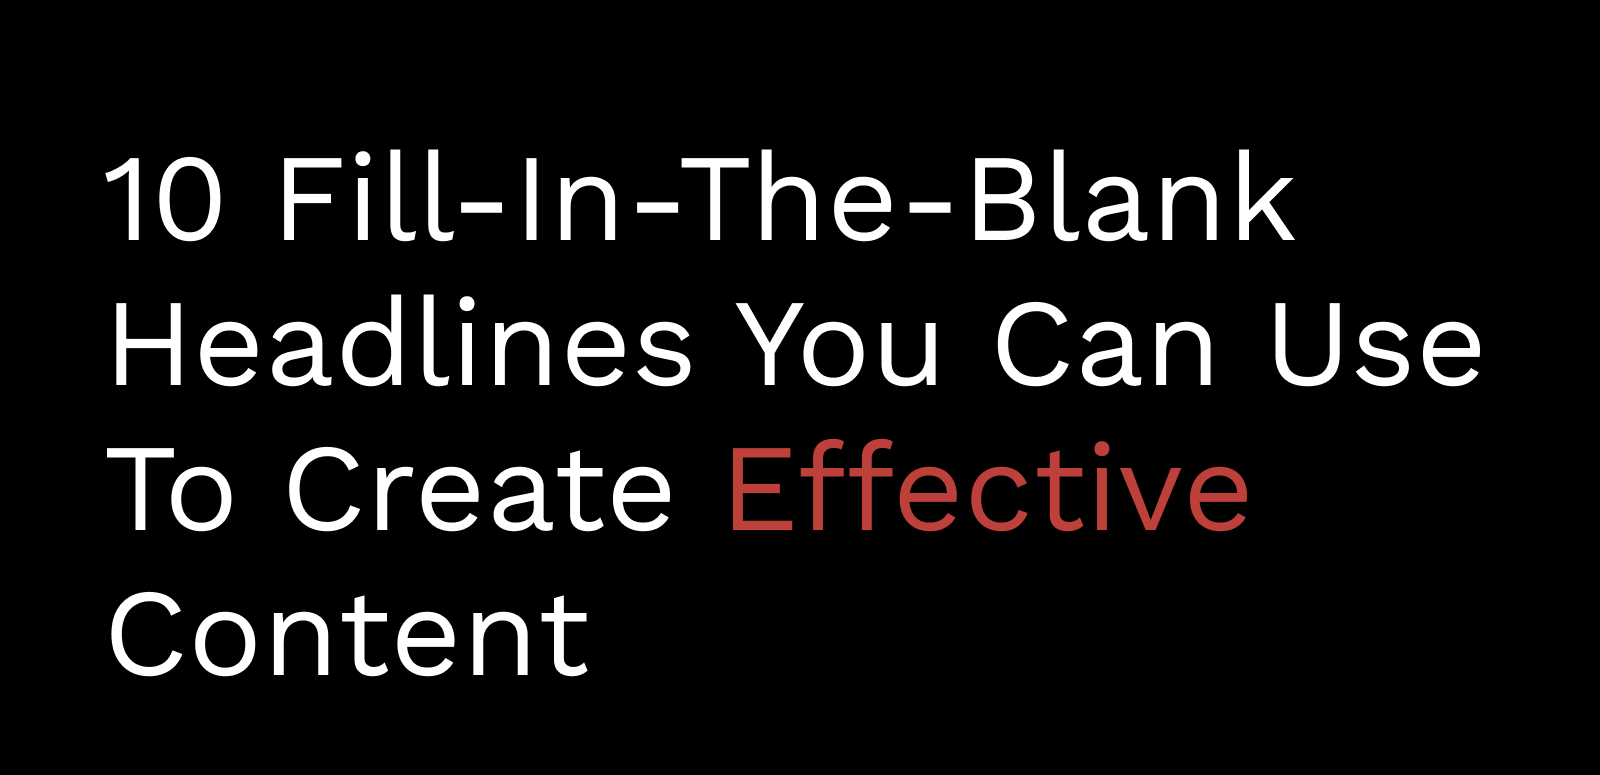 10 Fill-In-The-Blank Headlines You Can Use To Create Effective Contrent